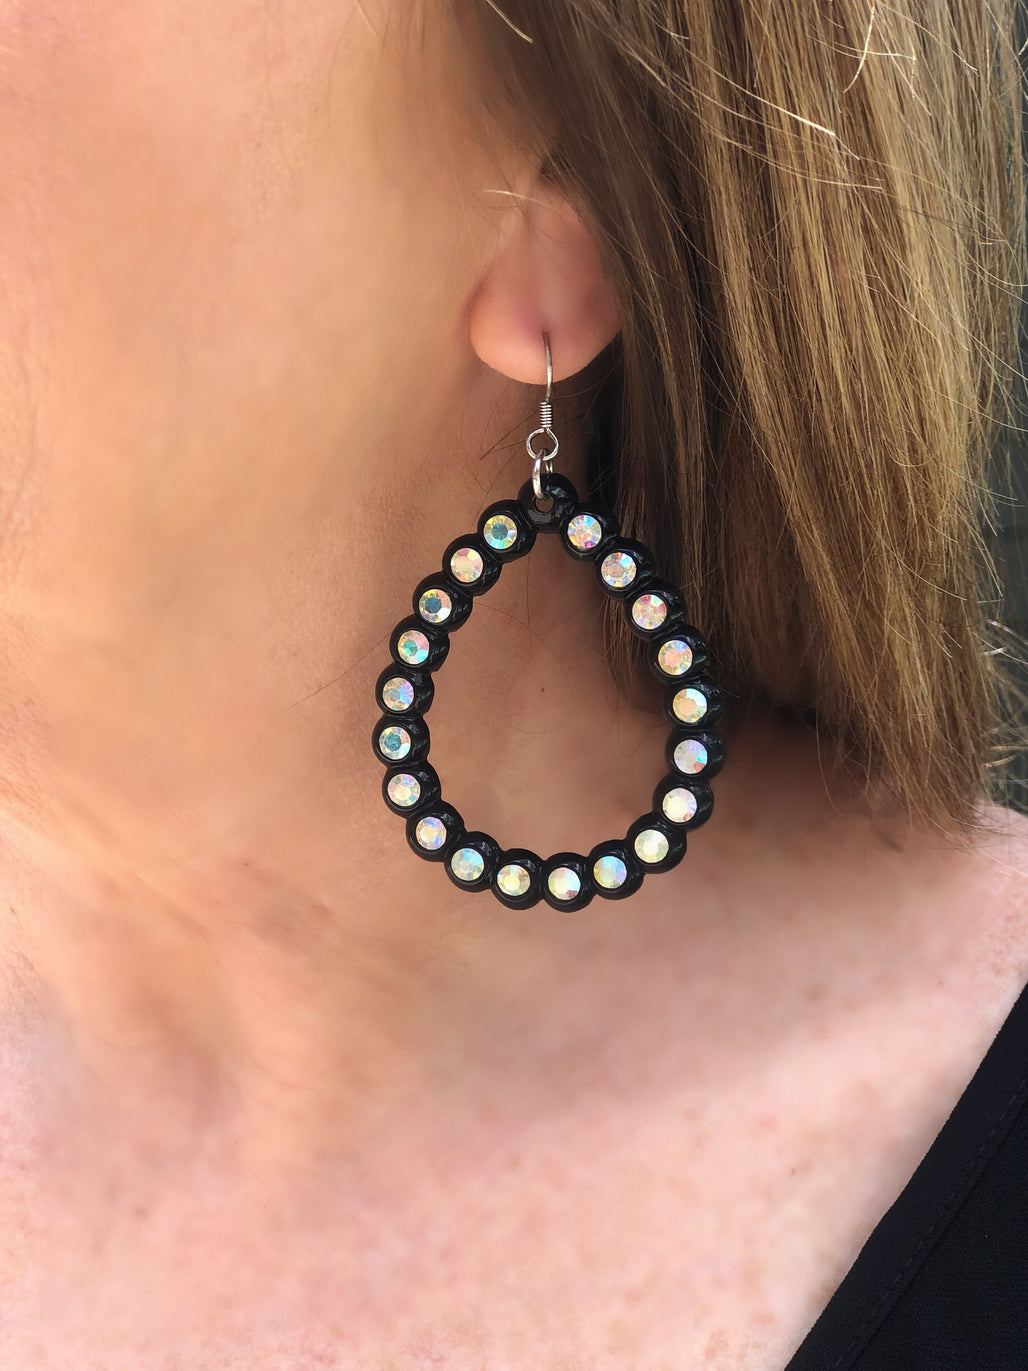 Black Statement Earrings - Bellamie Boutique